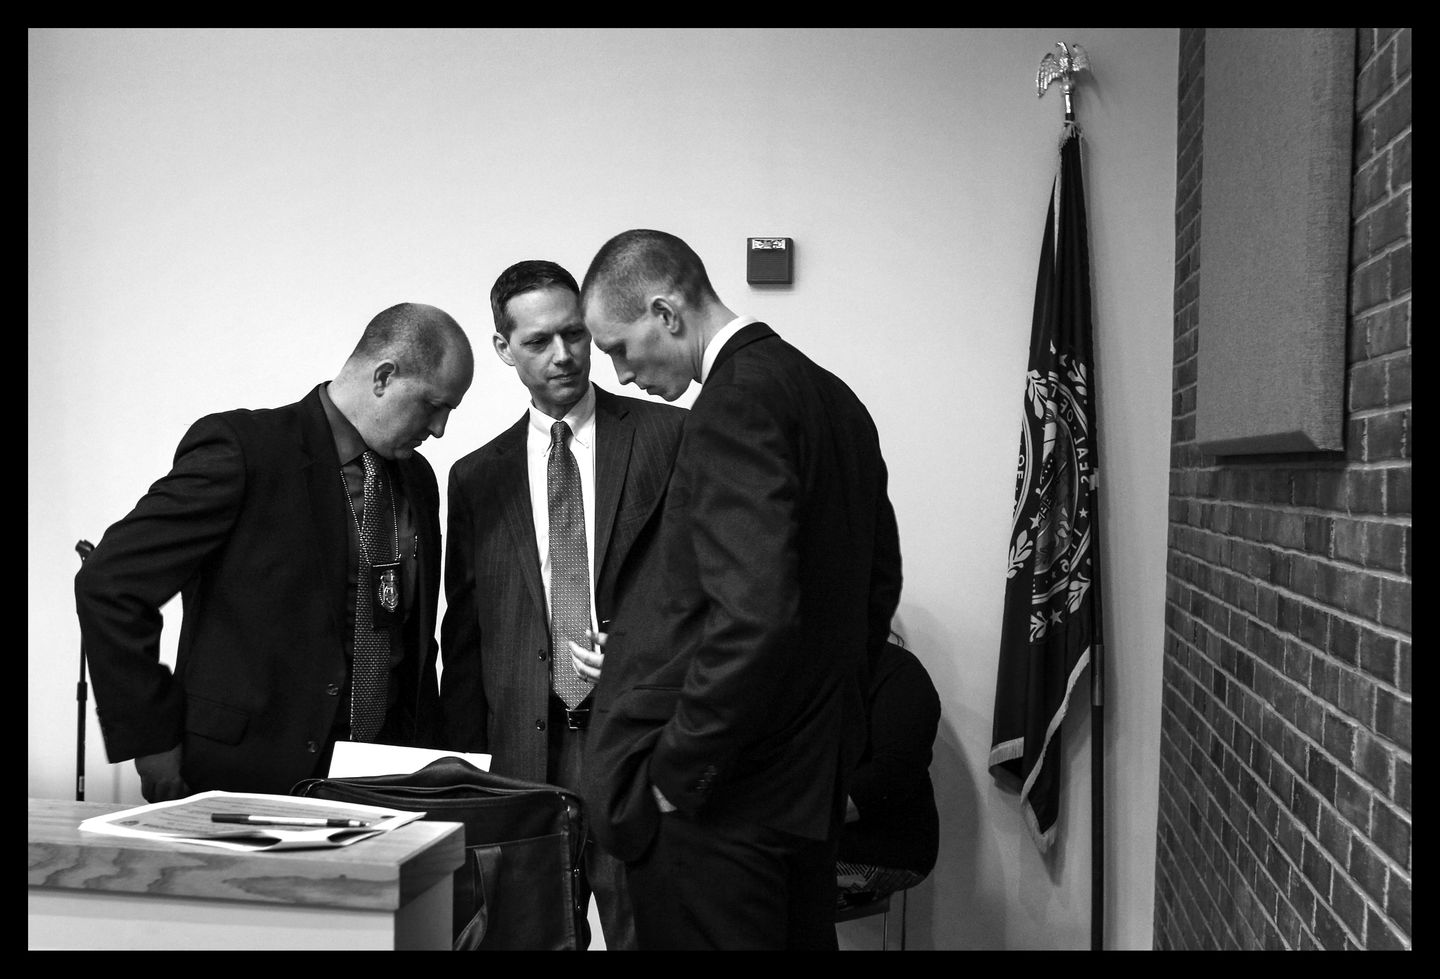 Detective Captain Ryan Grant (from left) of the Manchester, N.H., Police Department; Senior Assistant Attorney General Jeffery Strelzin; and State Police Sergeant  Michael Kokoski, in charge of the Cold Case Unit, talked before a January news conference in Concord, N.H., to discuss recent efforts to locate Denise Beaudin.